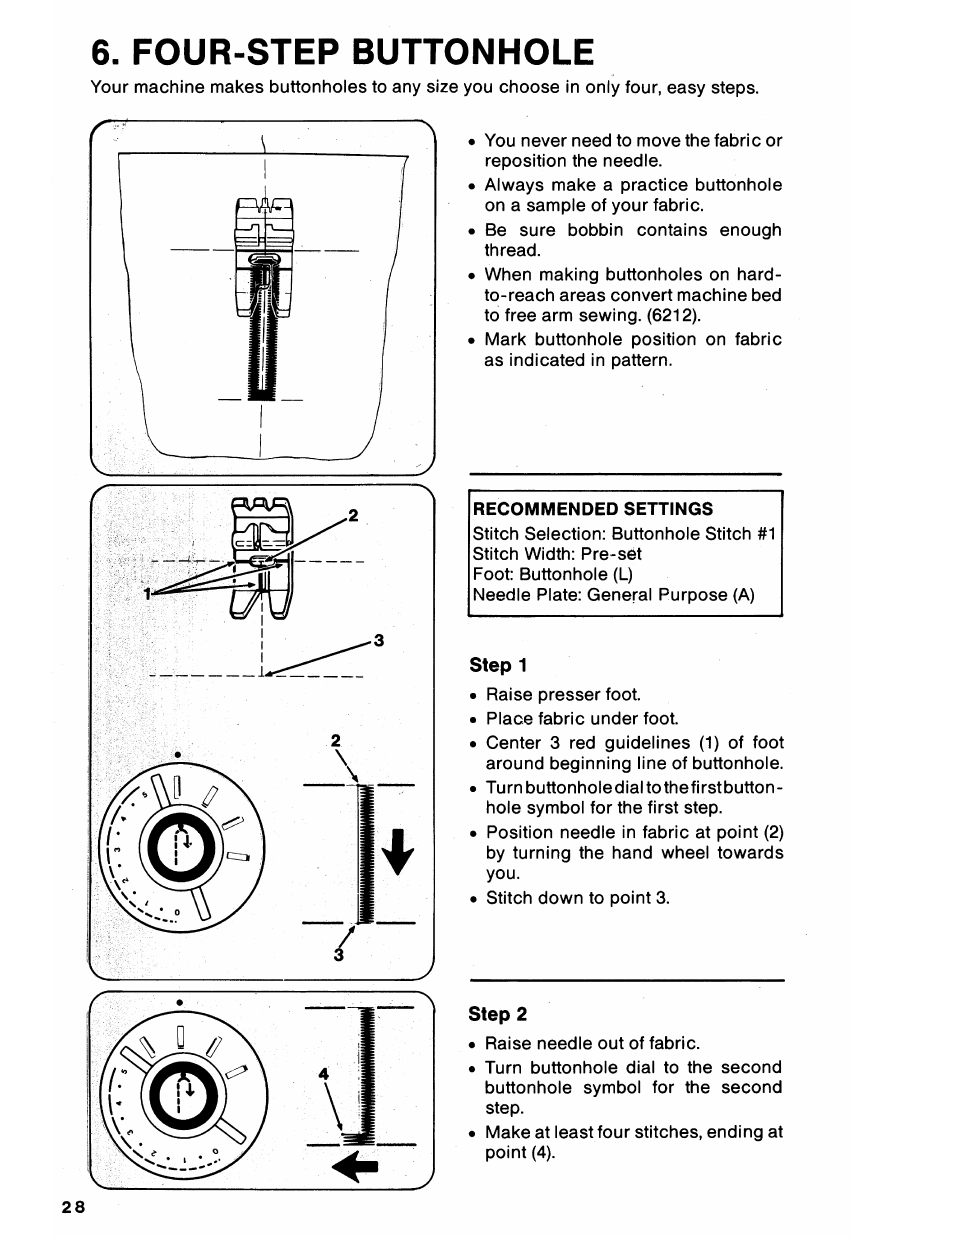 Four step buttonhole recommended settings step 1 singer 6212 four step buttonhole recommended settings step 1 singer 6212 user manual page 30 40 biocorpaavc Gallery